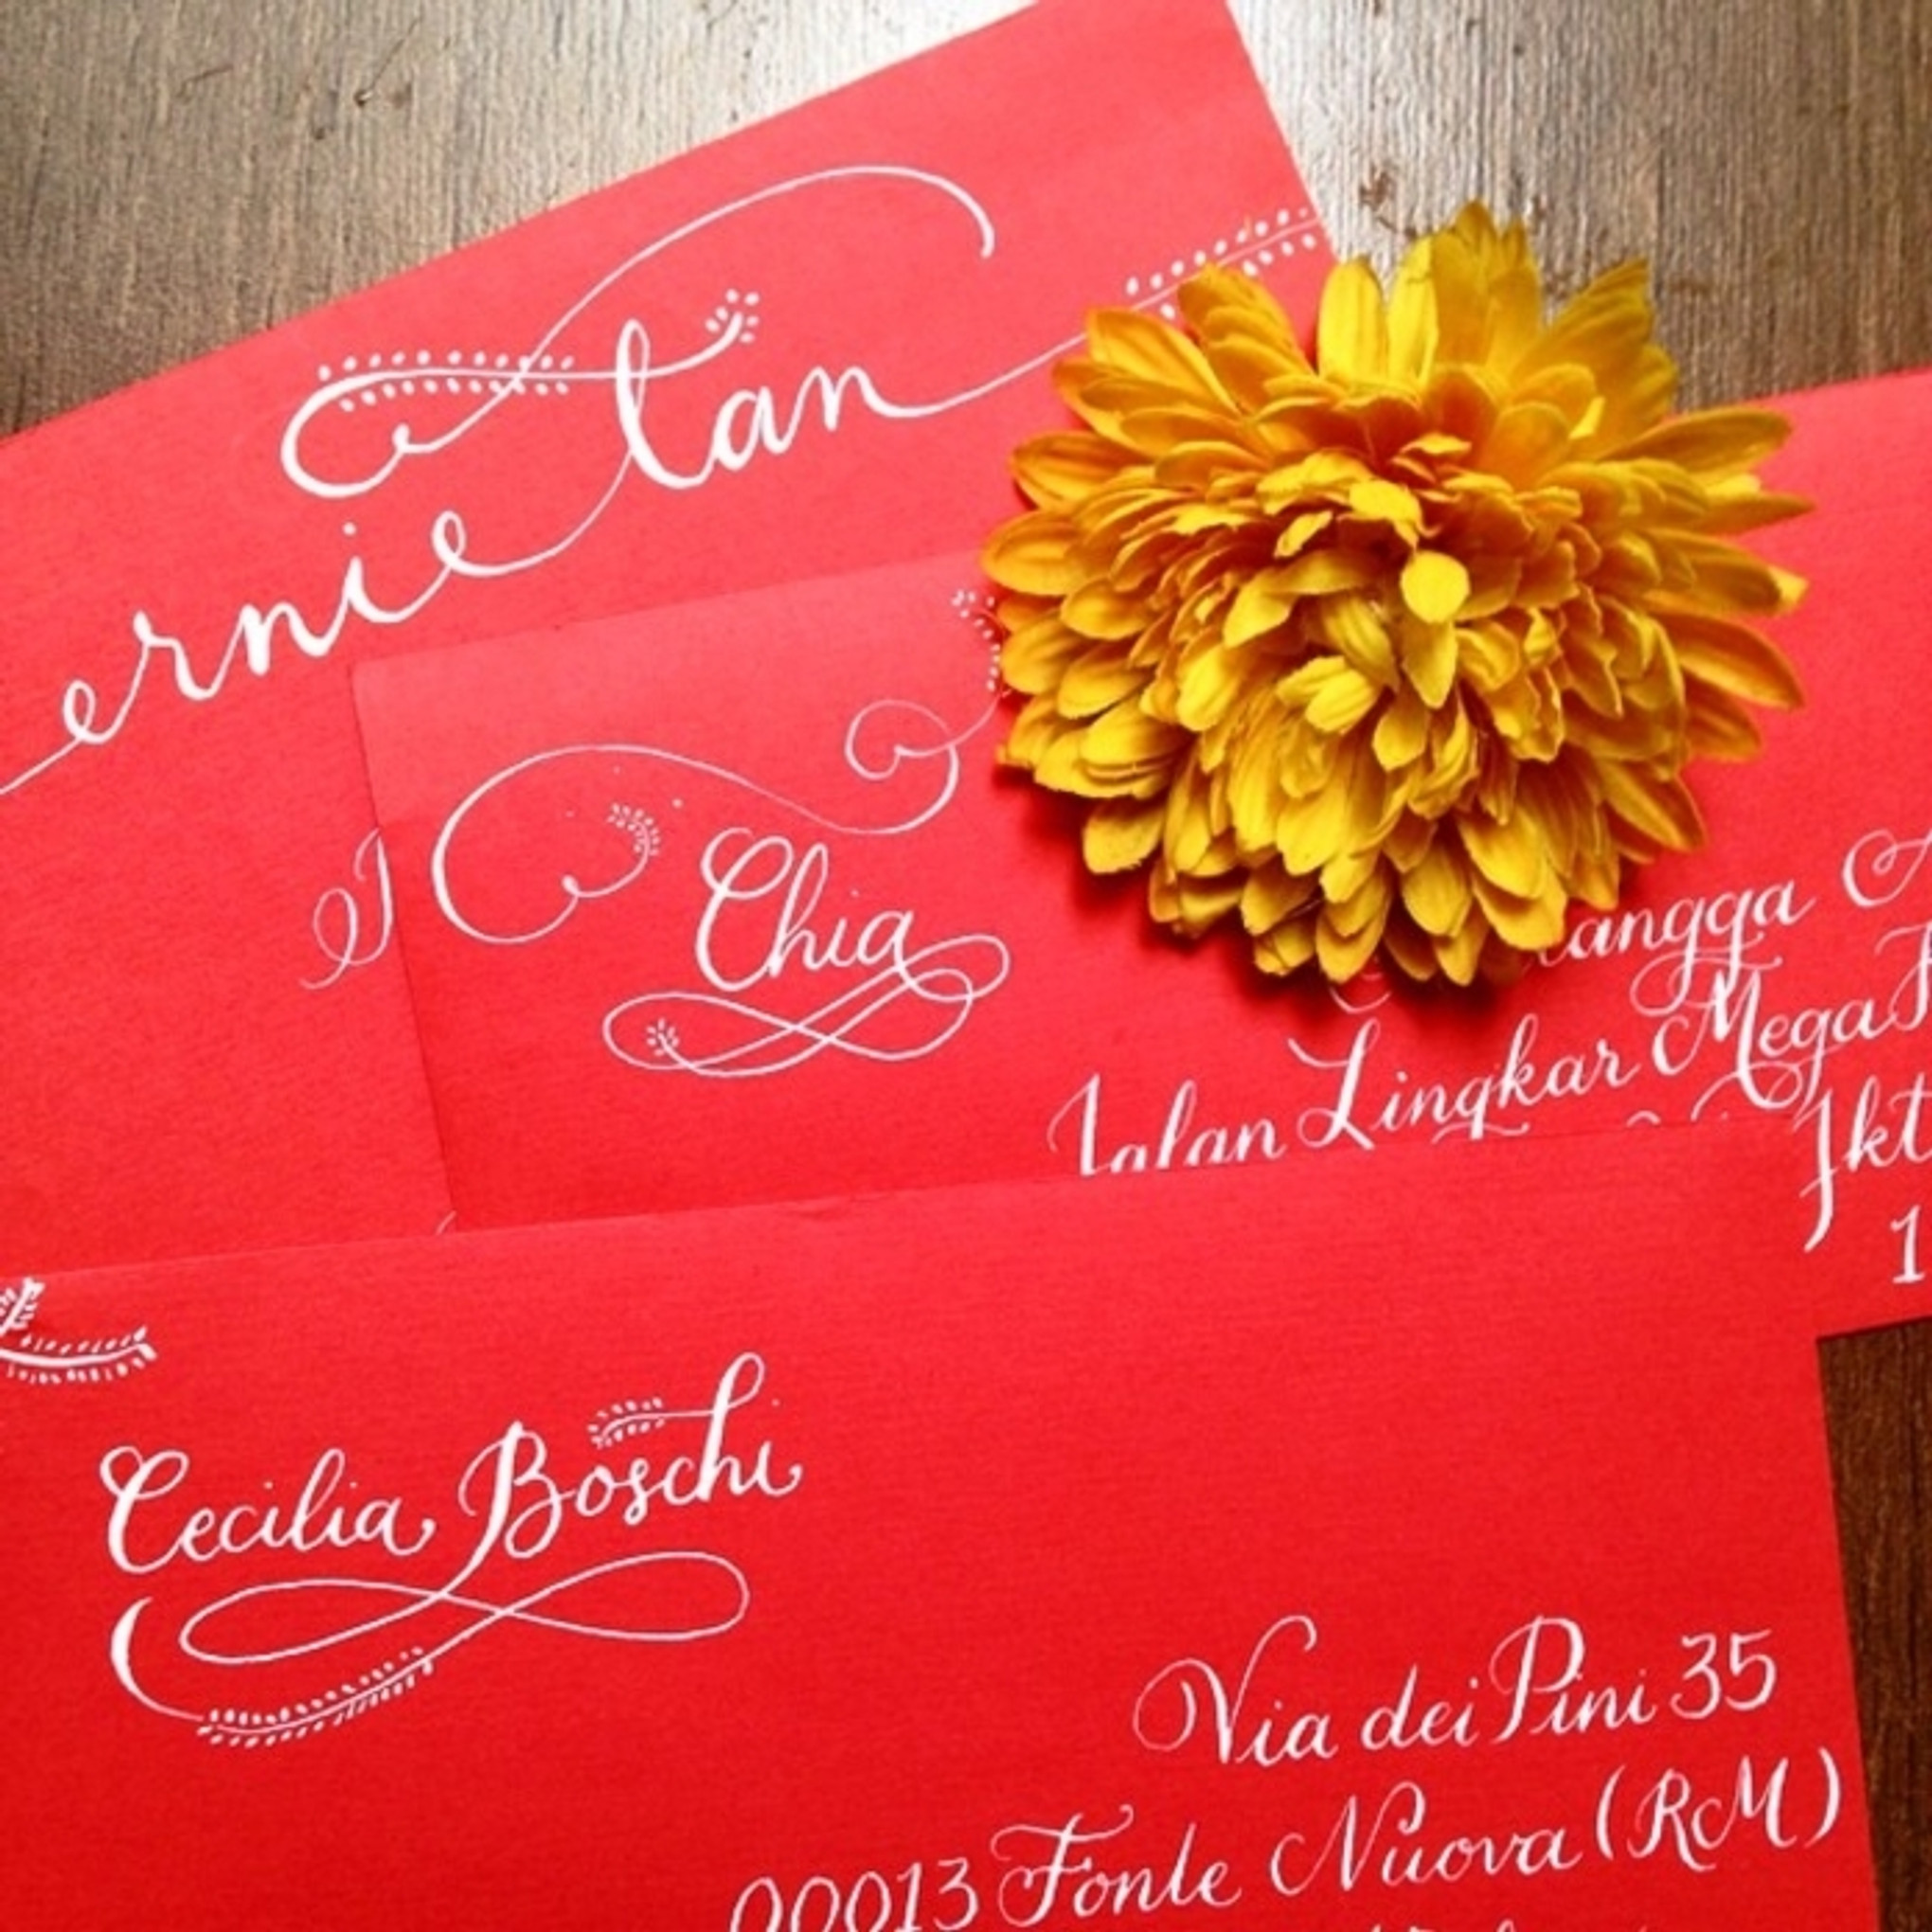 5 Things to Consider about Wedding Calligraphy - Bridestory Blog